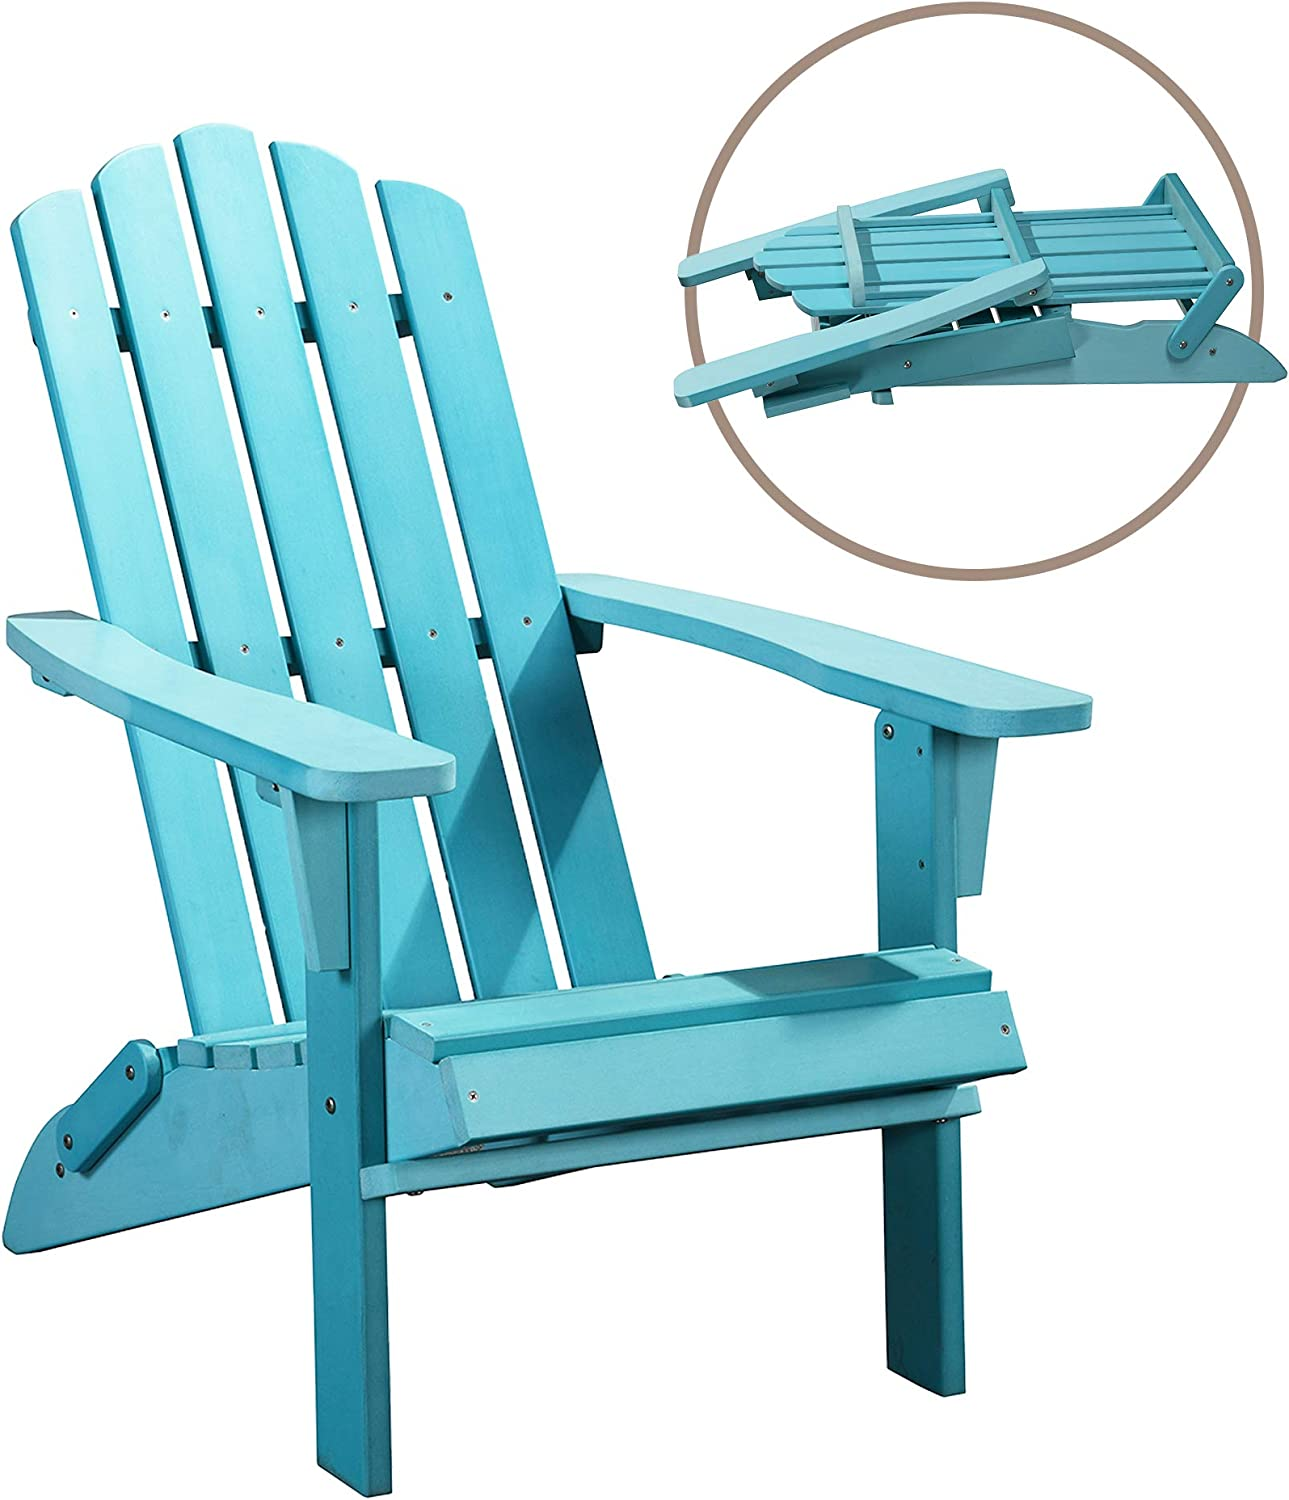 PolyTEAK Classic Folding Poly Adirondack Chair, Turquoise Blue | Adult-Size, Weather Resistant, Made from Special Formulated Poly Lumber Plastic